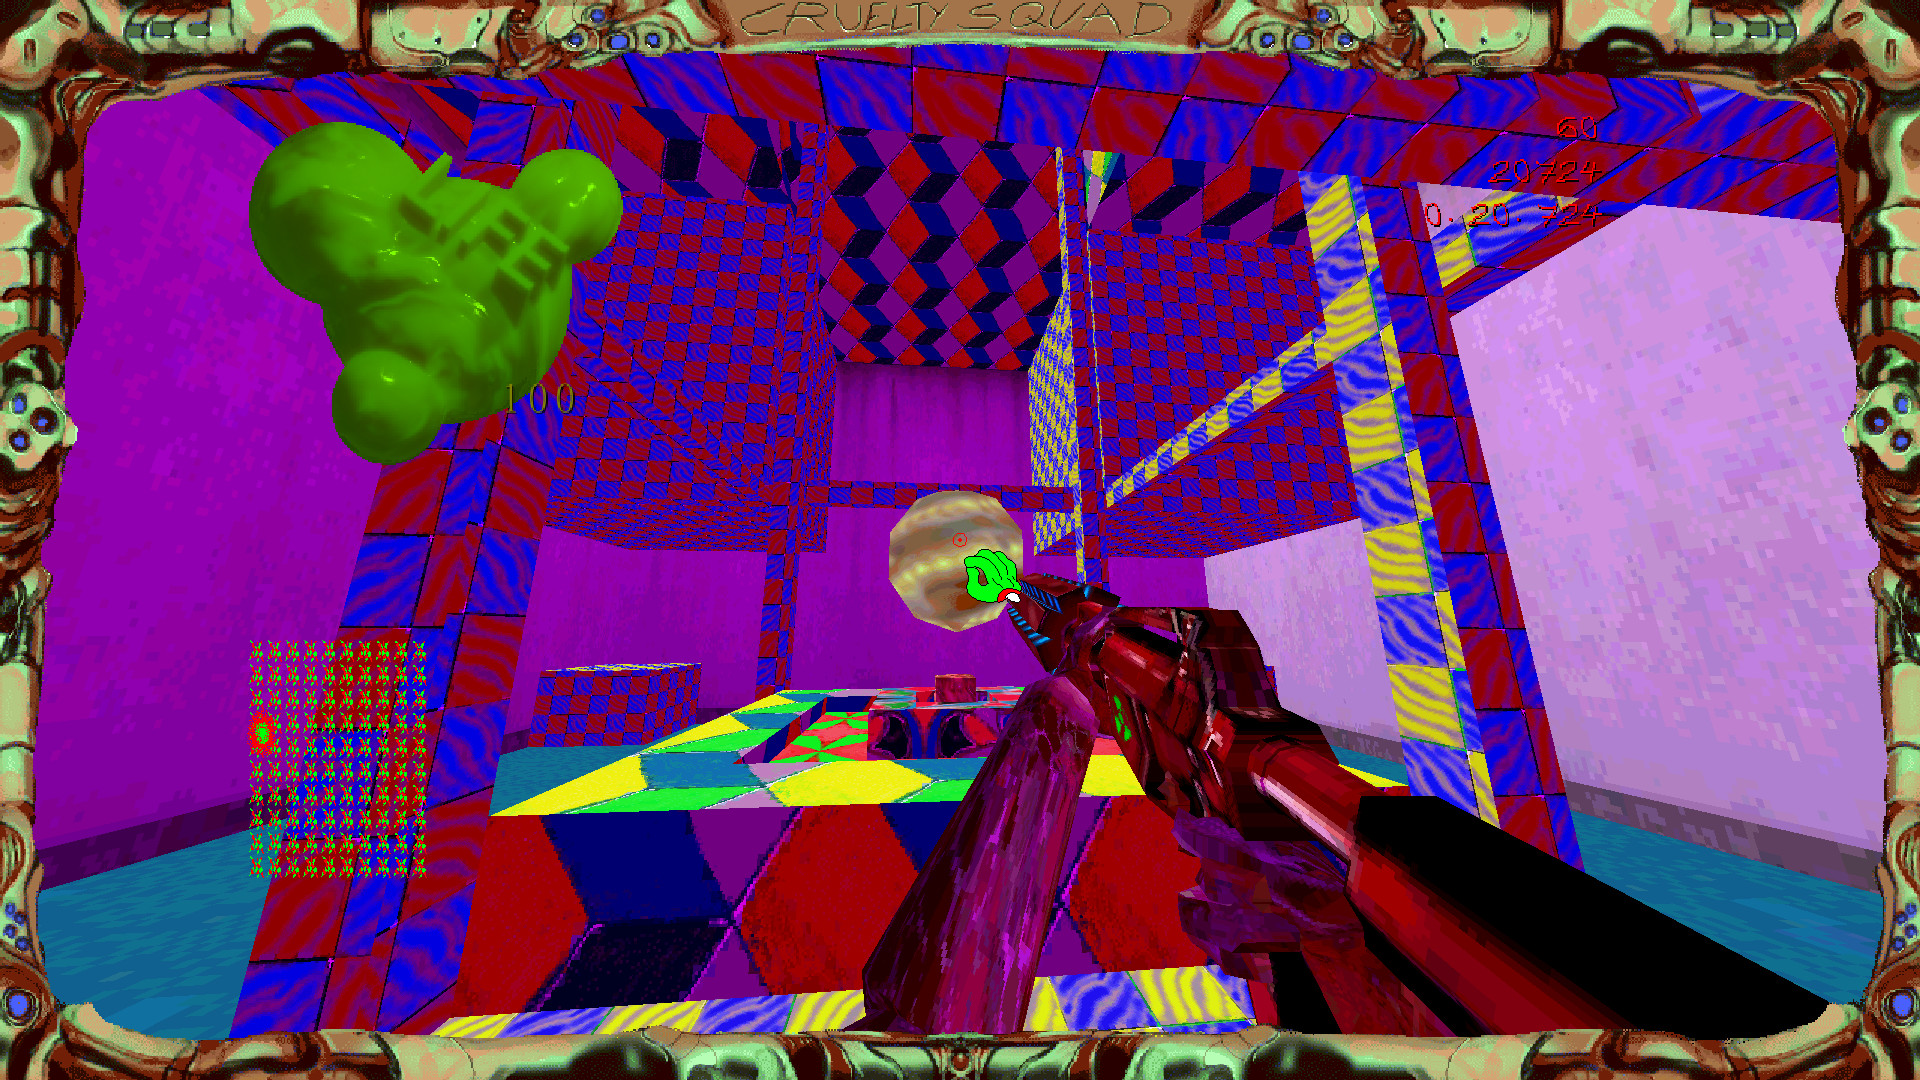 Cruelty Squad - The protagonist navigates through a purple, low resolution world. They are carrying a gun, and a large health bar takes up the top right of the screen.